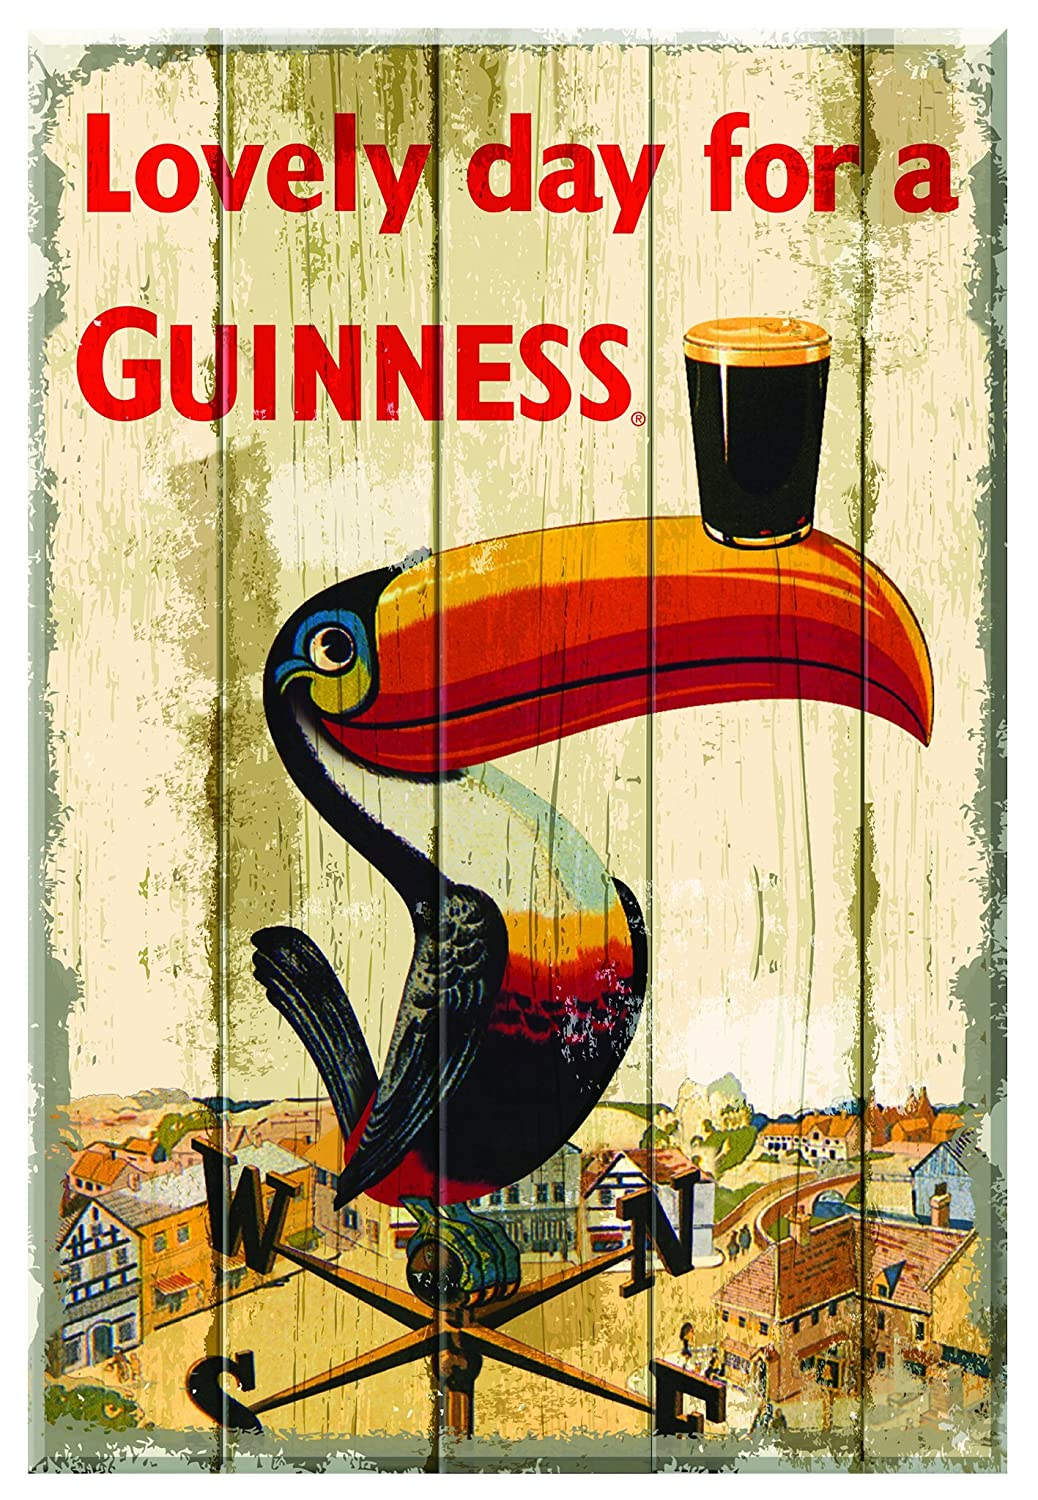 Amazon.com: Guinness Toucan Wallart Wooden: Wall Art